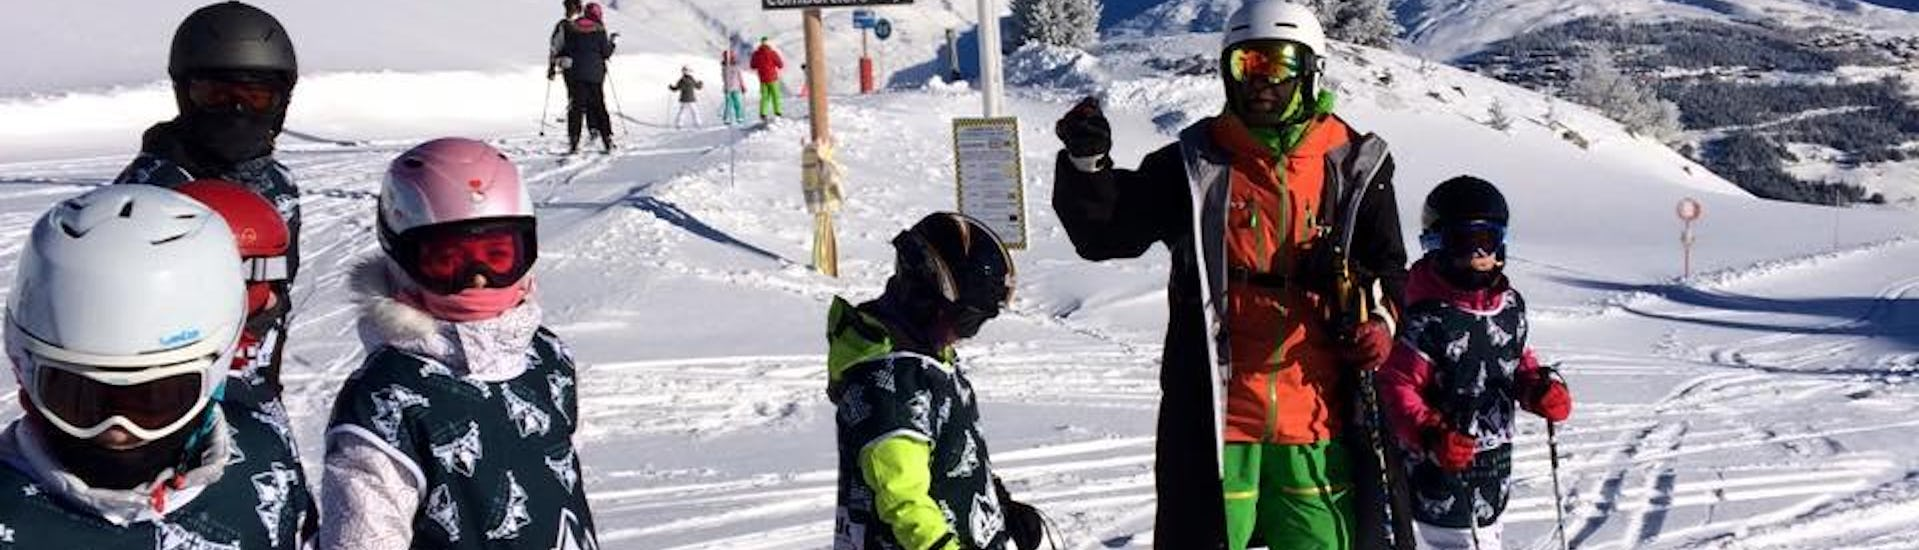 Kids Ski Lessons (7-14 years) - Afternoon - Arc 1800